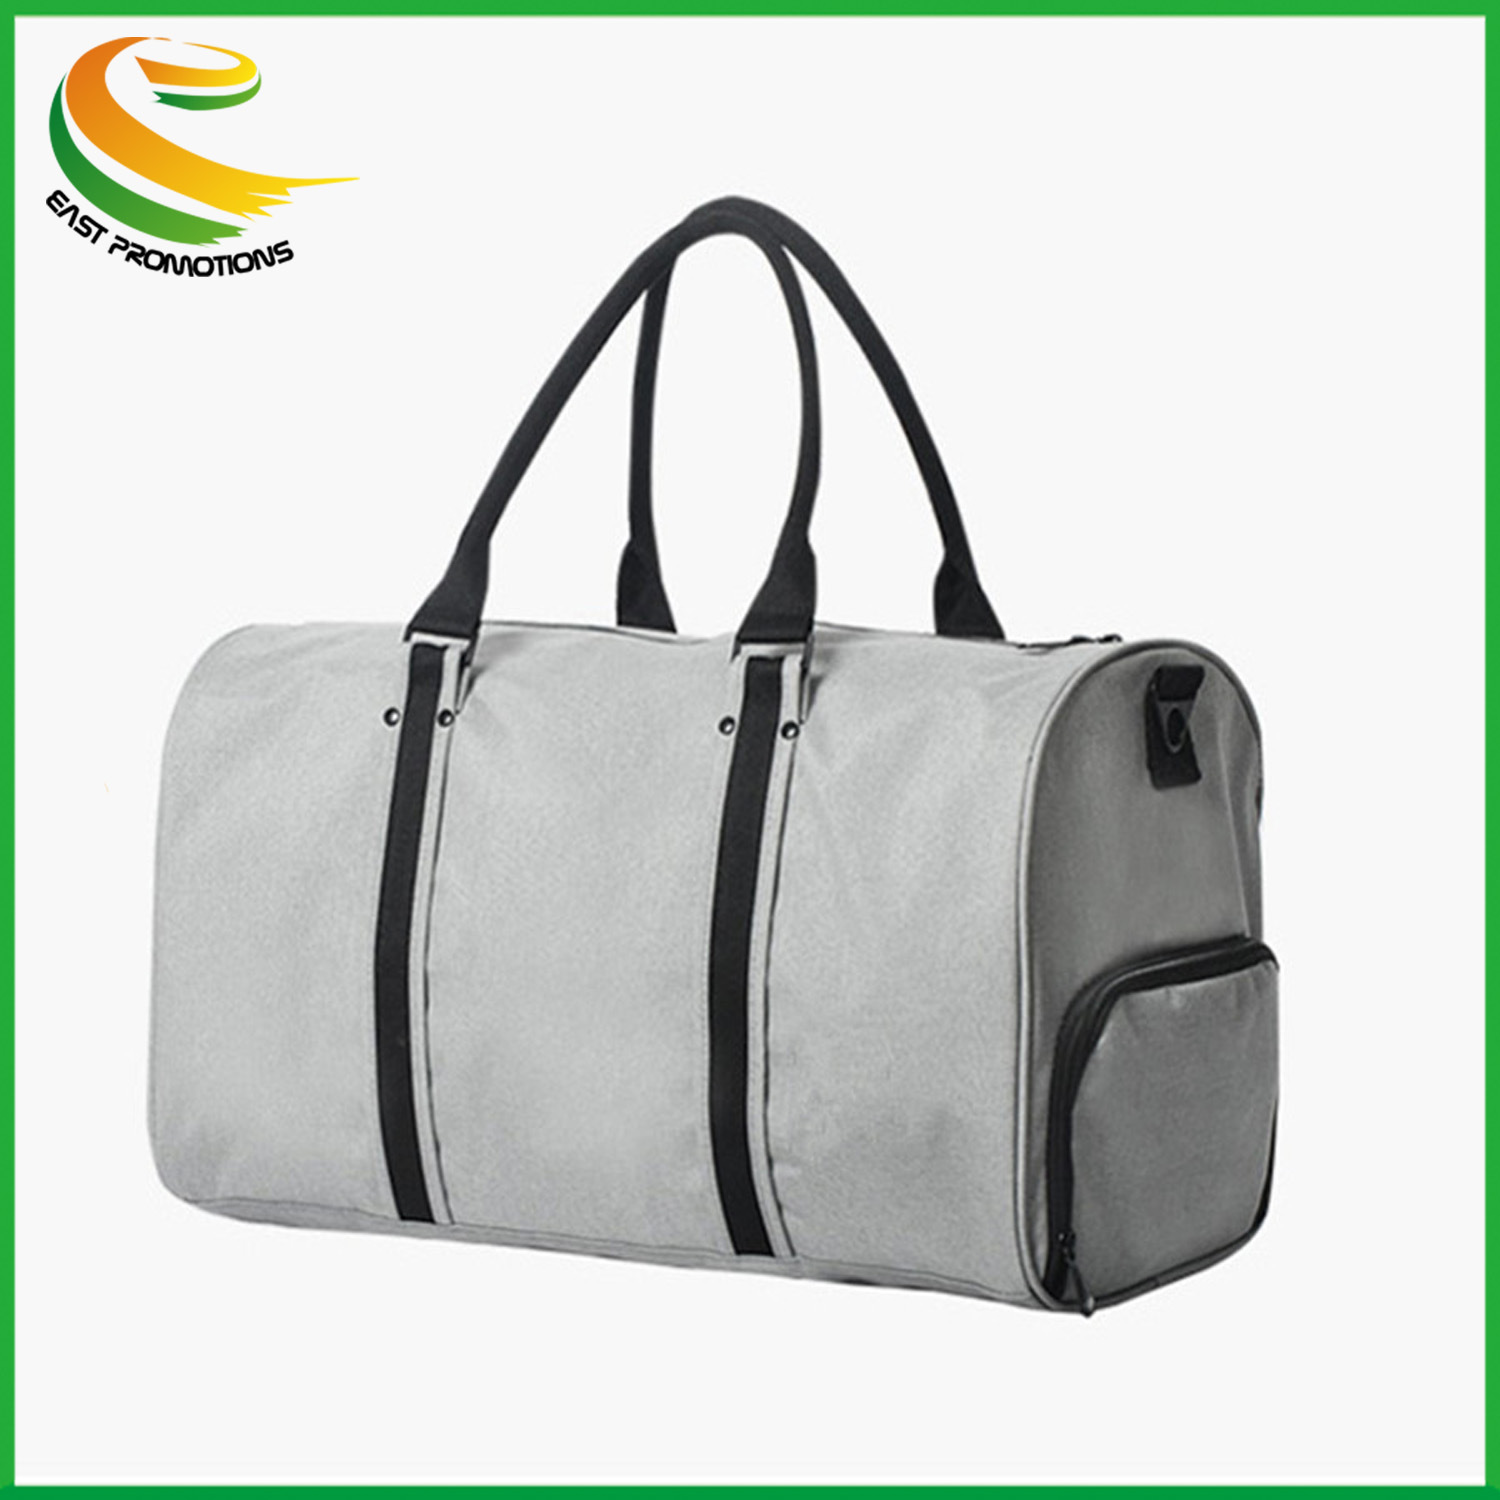 acf827574 Fitness Customized Carry-on Luggage Duffel Gym Bag Polyester Customized  Large Volume Gymnastic Sport Travel Bag with Custom Logo